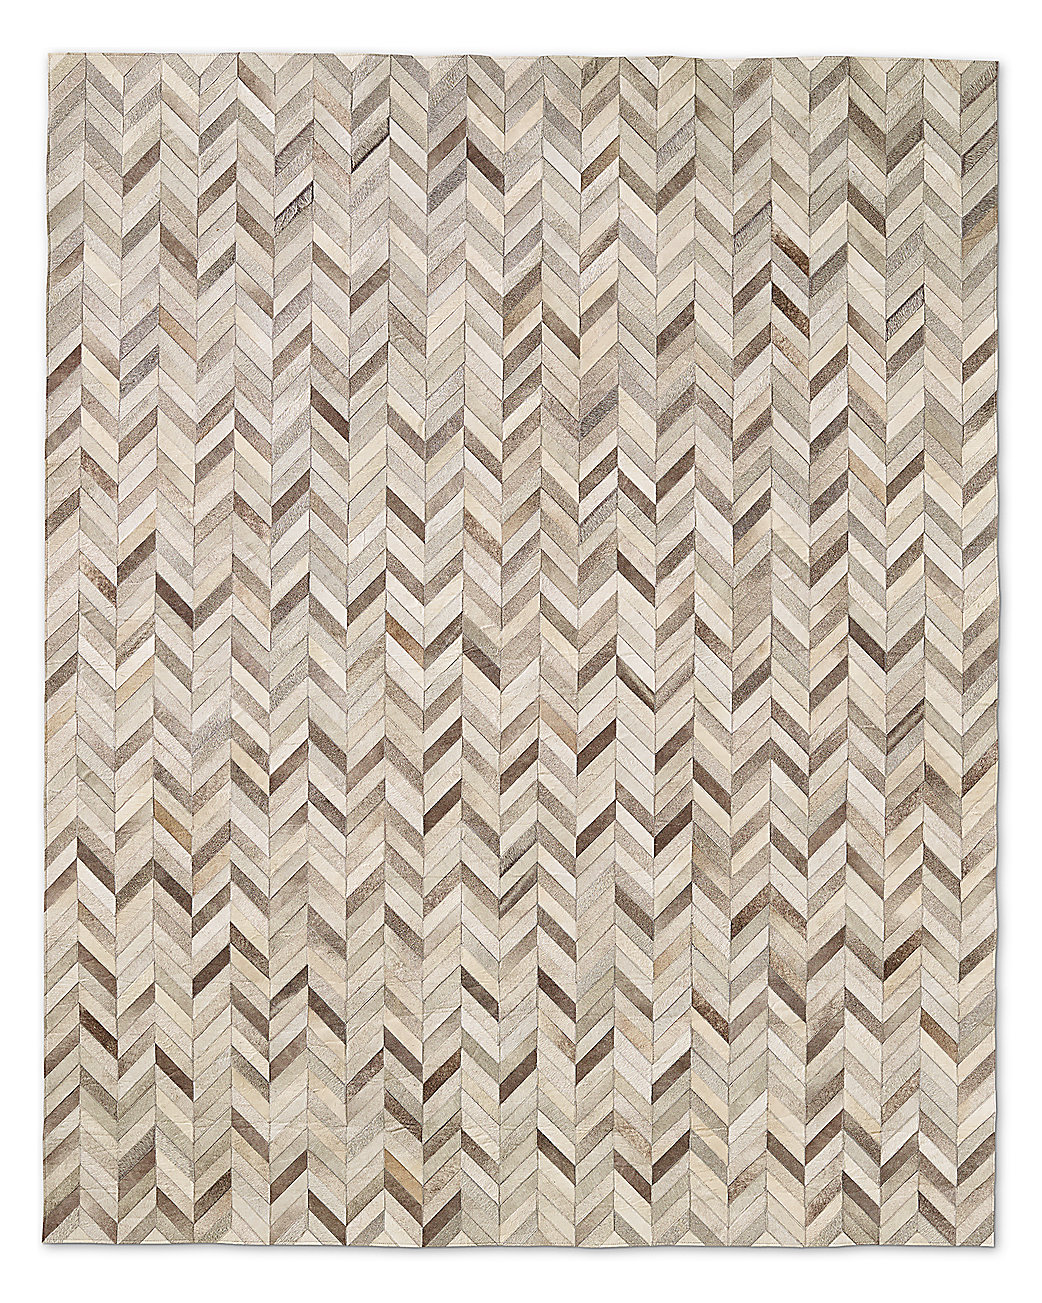 Chevron Cowhide Rug - Grey